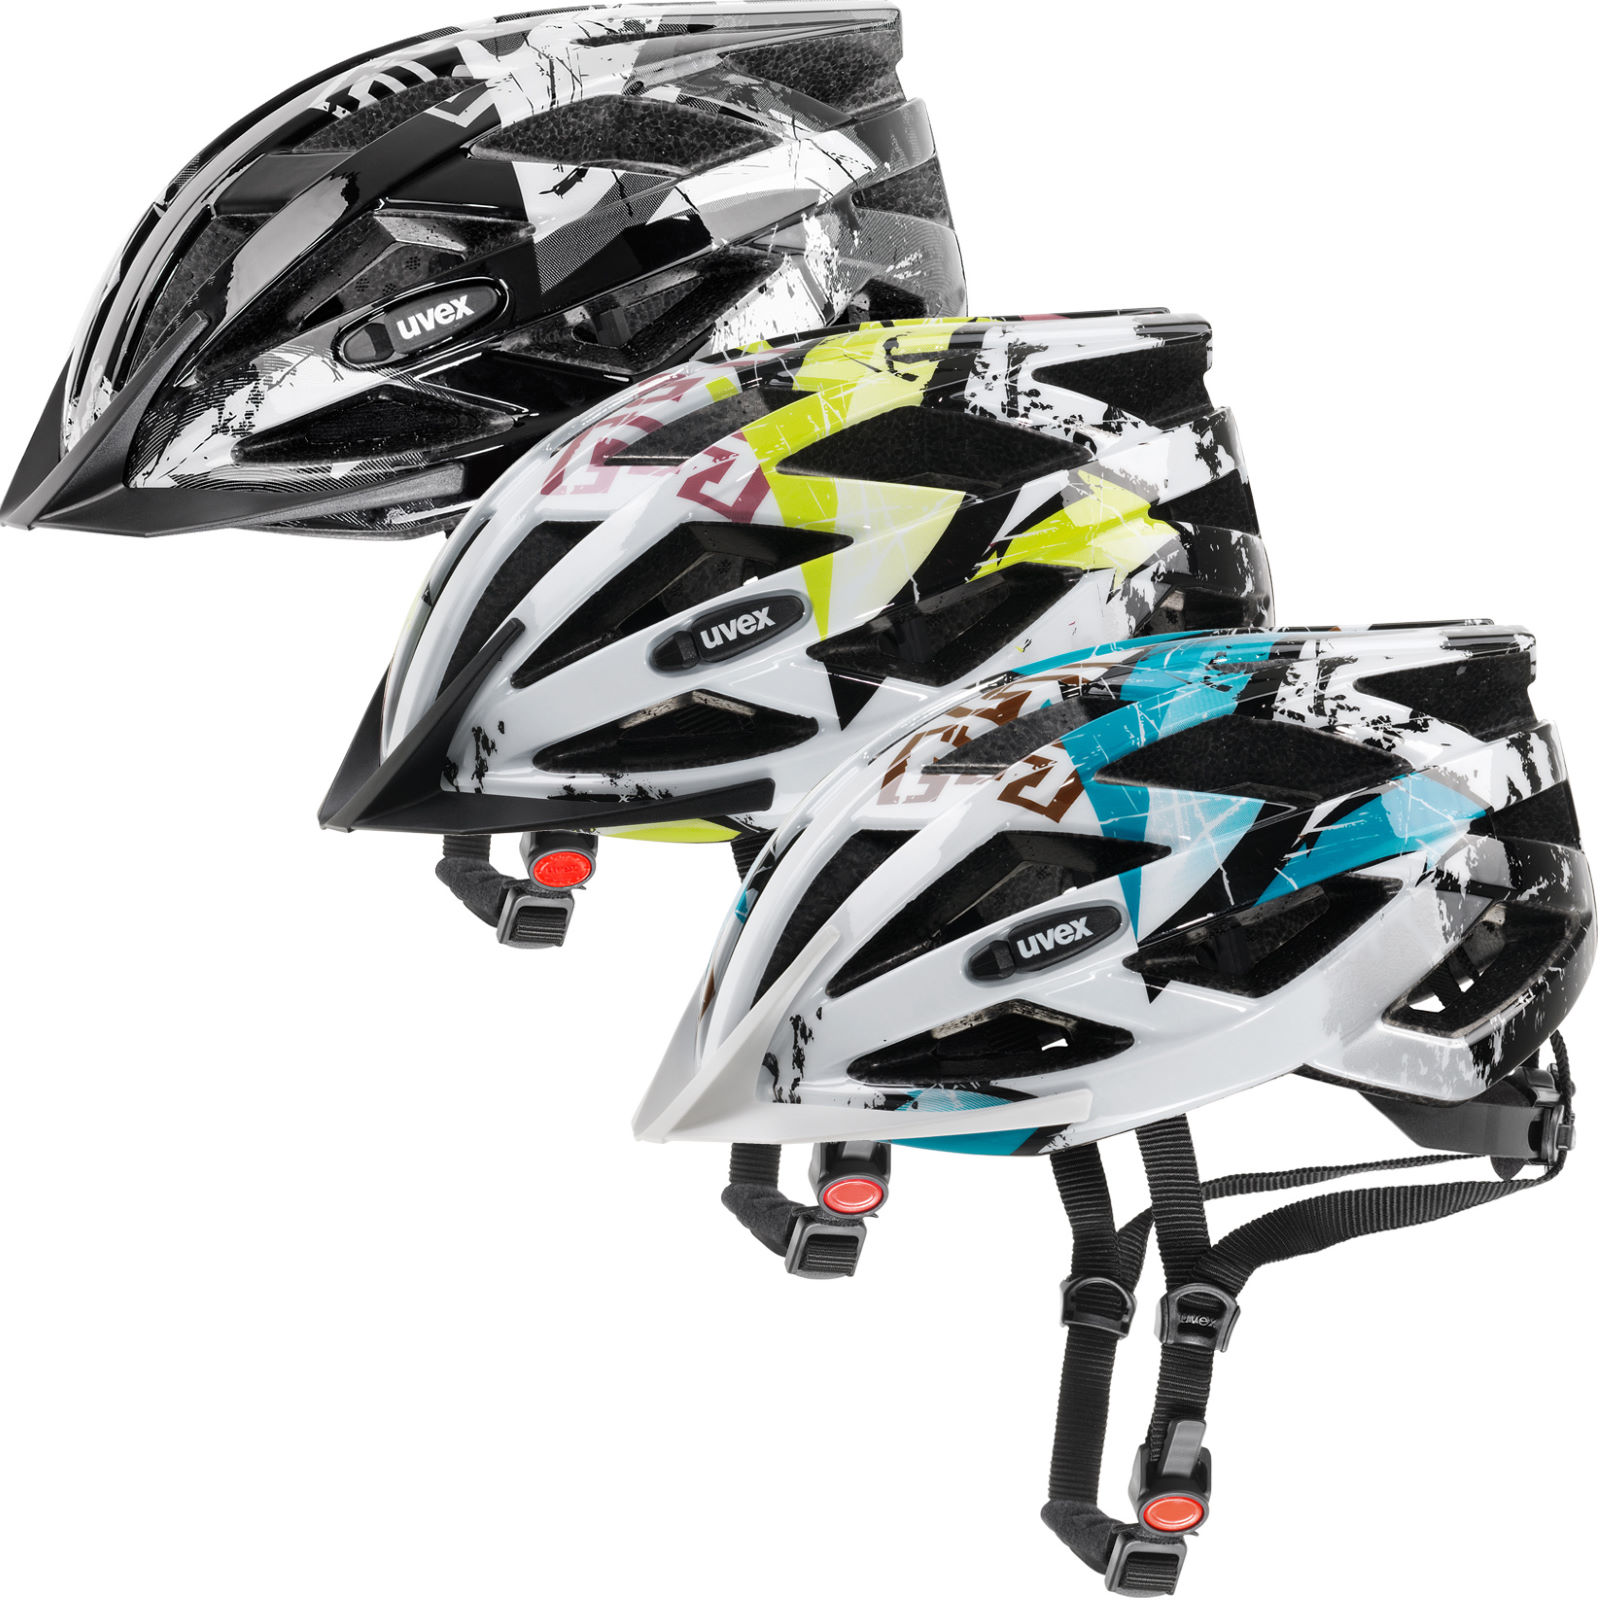 wiggle uvex kids air wing mtb helmet kids youths helmets. Black Bedroom Furniture Sets. Home Design Ideas